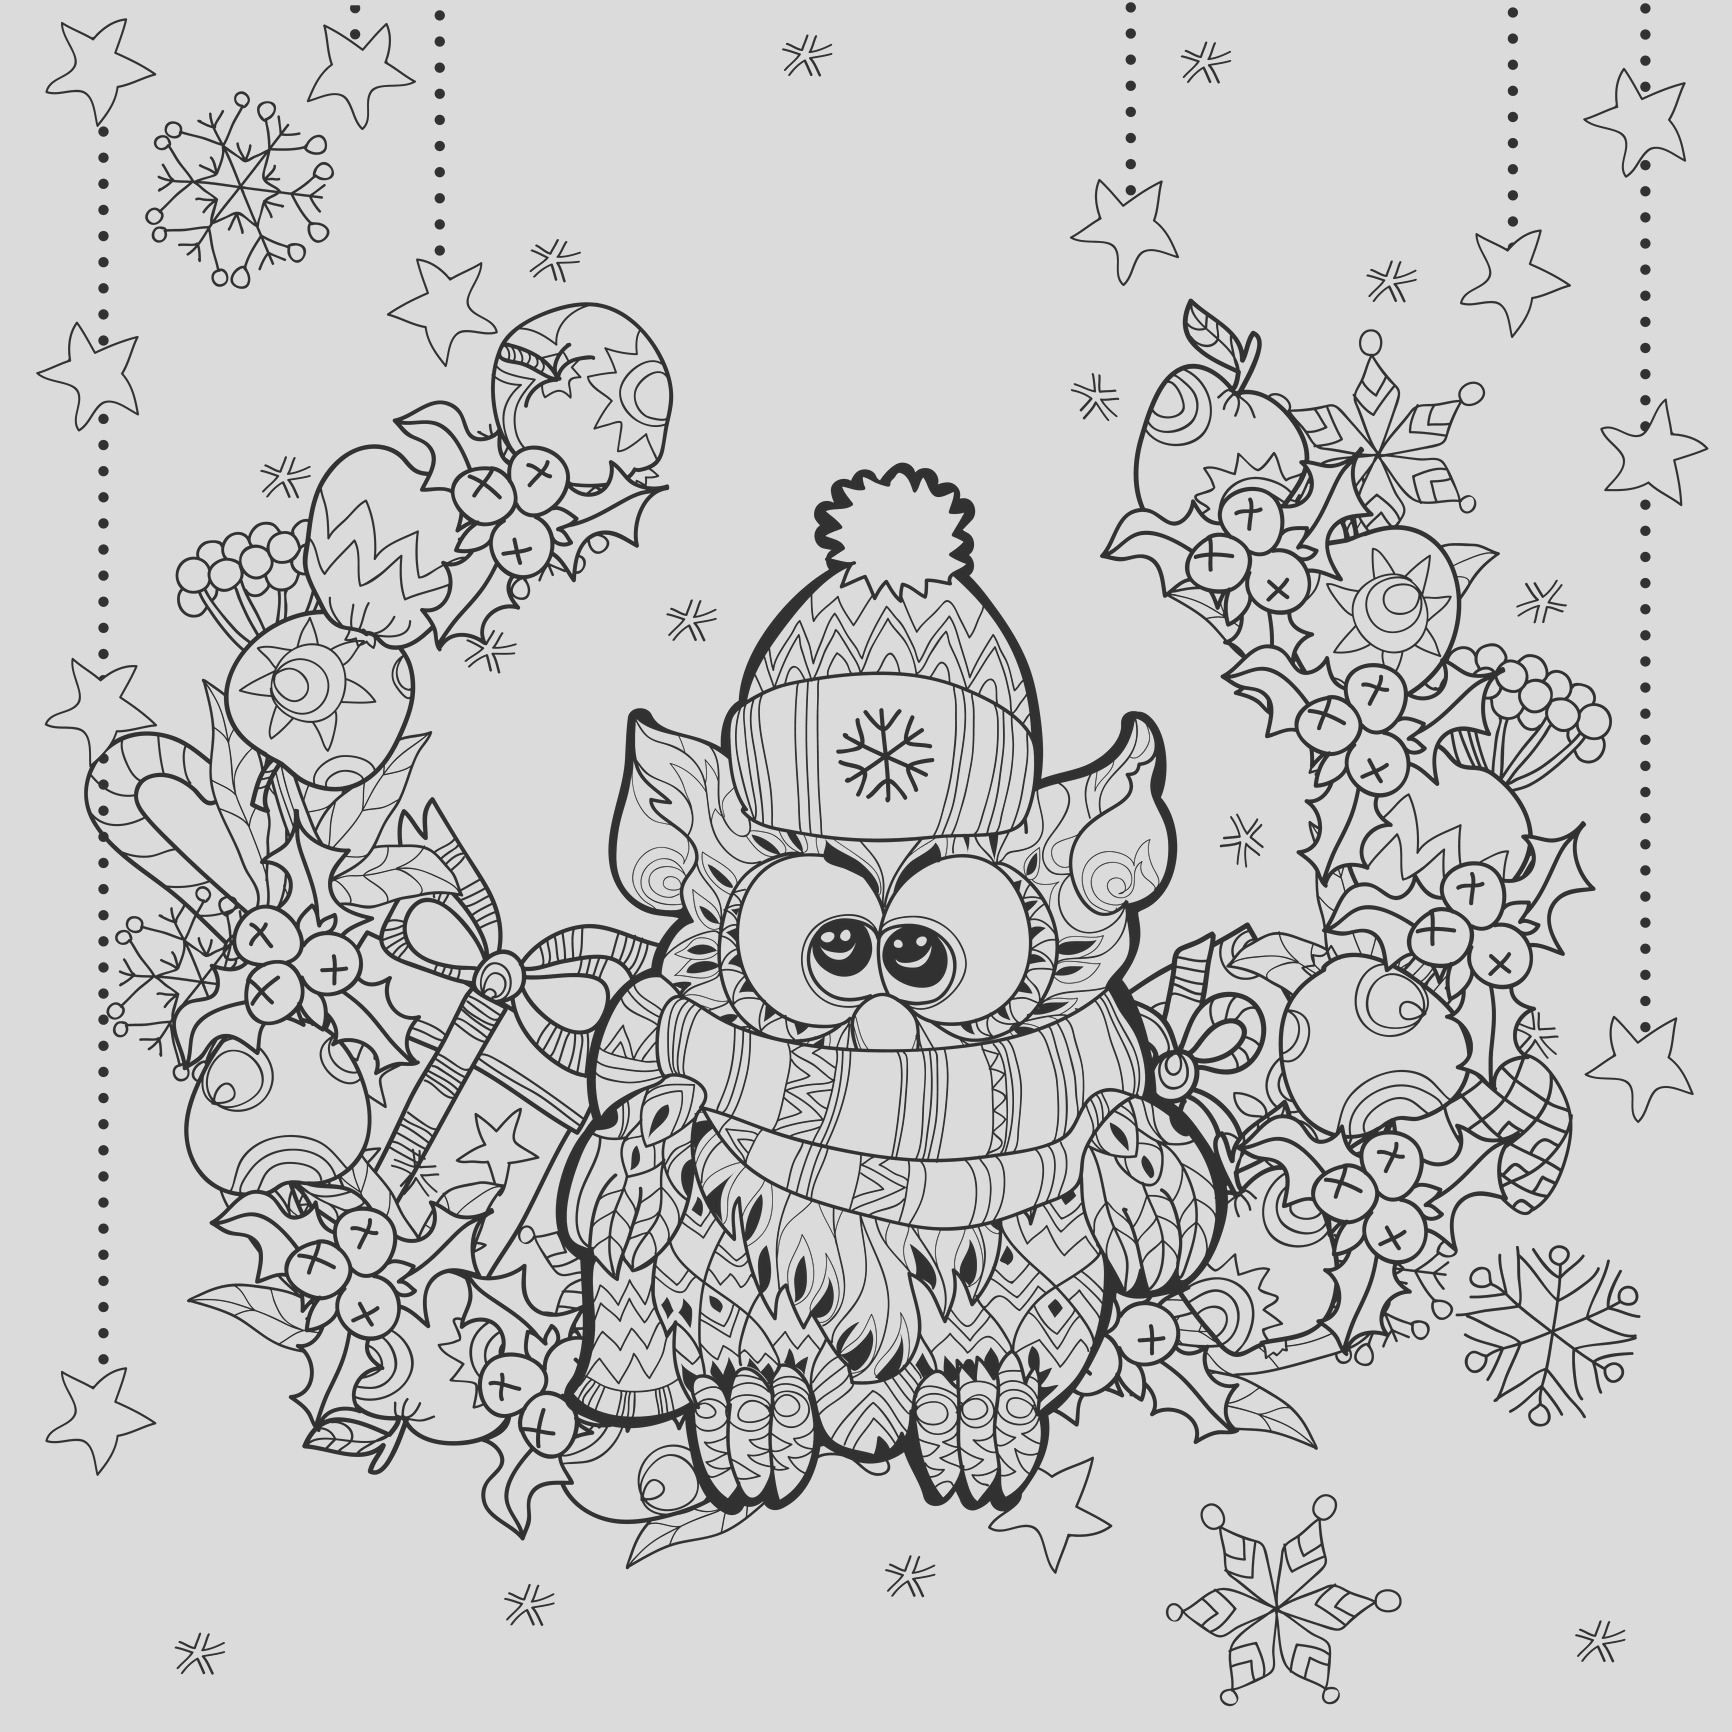 christmas adult coloring pages image=events christmas coloring zentangle christmas owl by Irina Yazeva 1